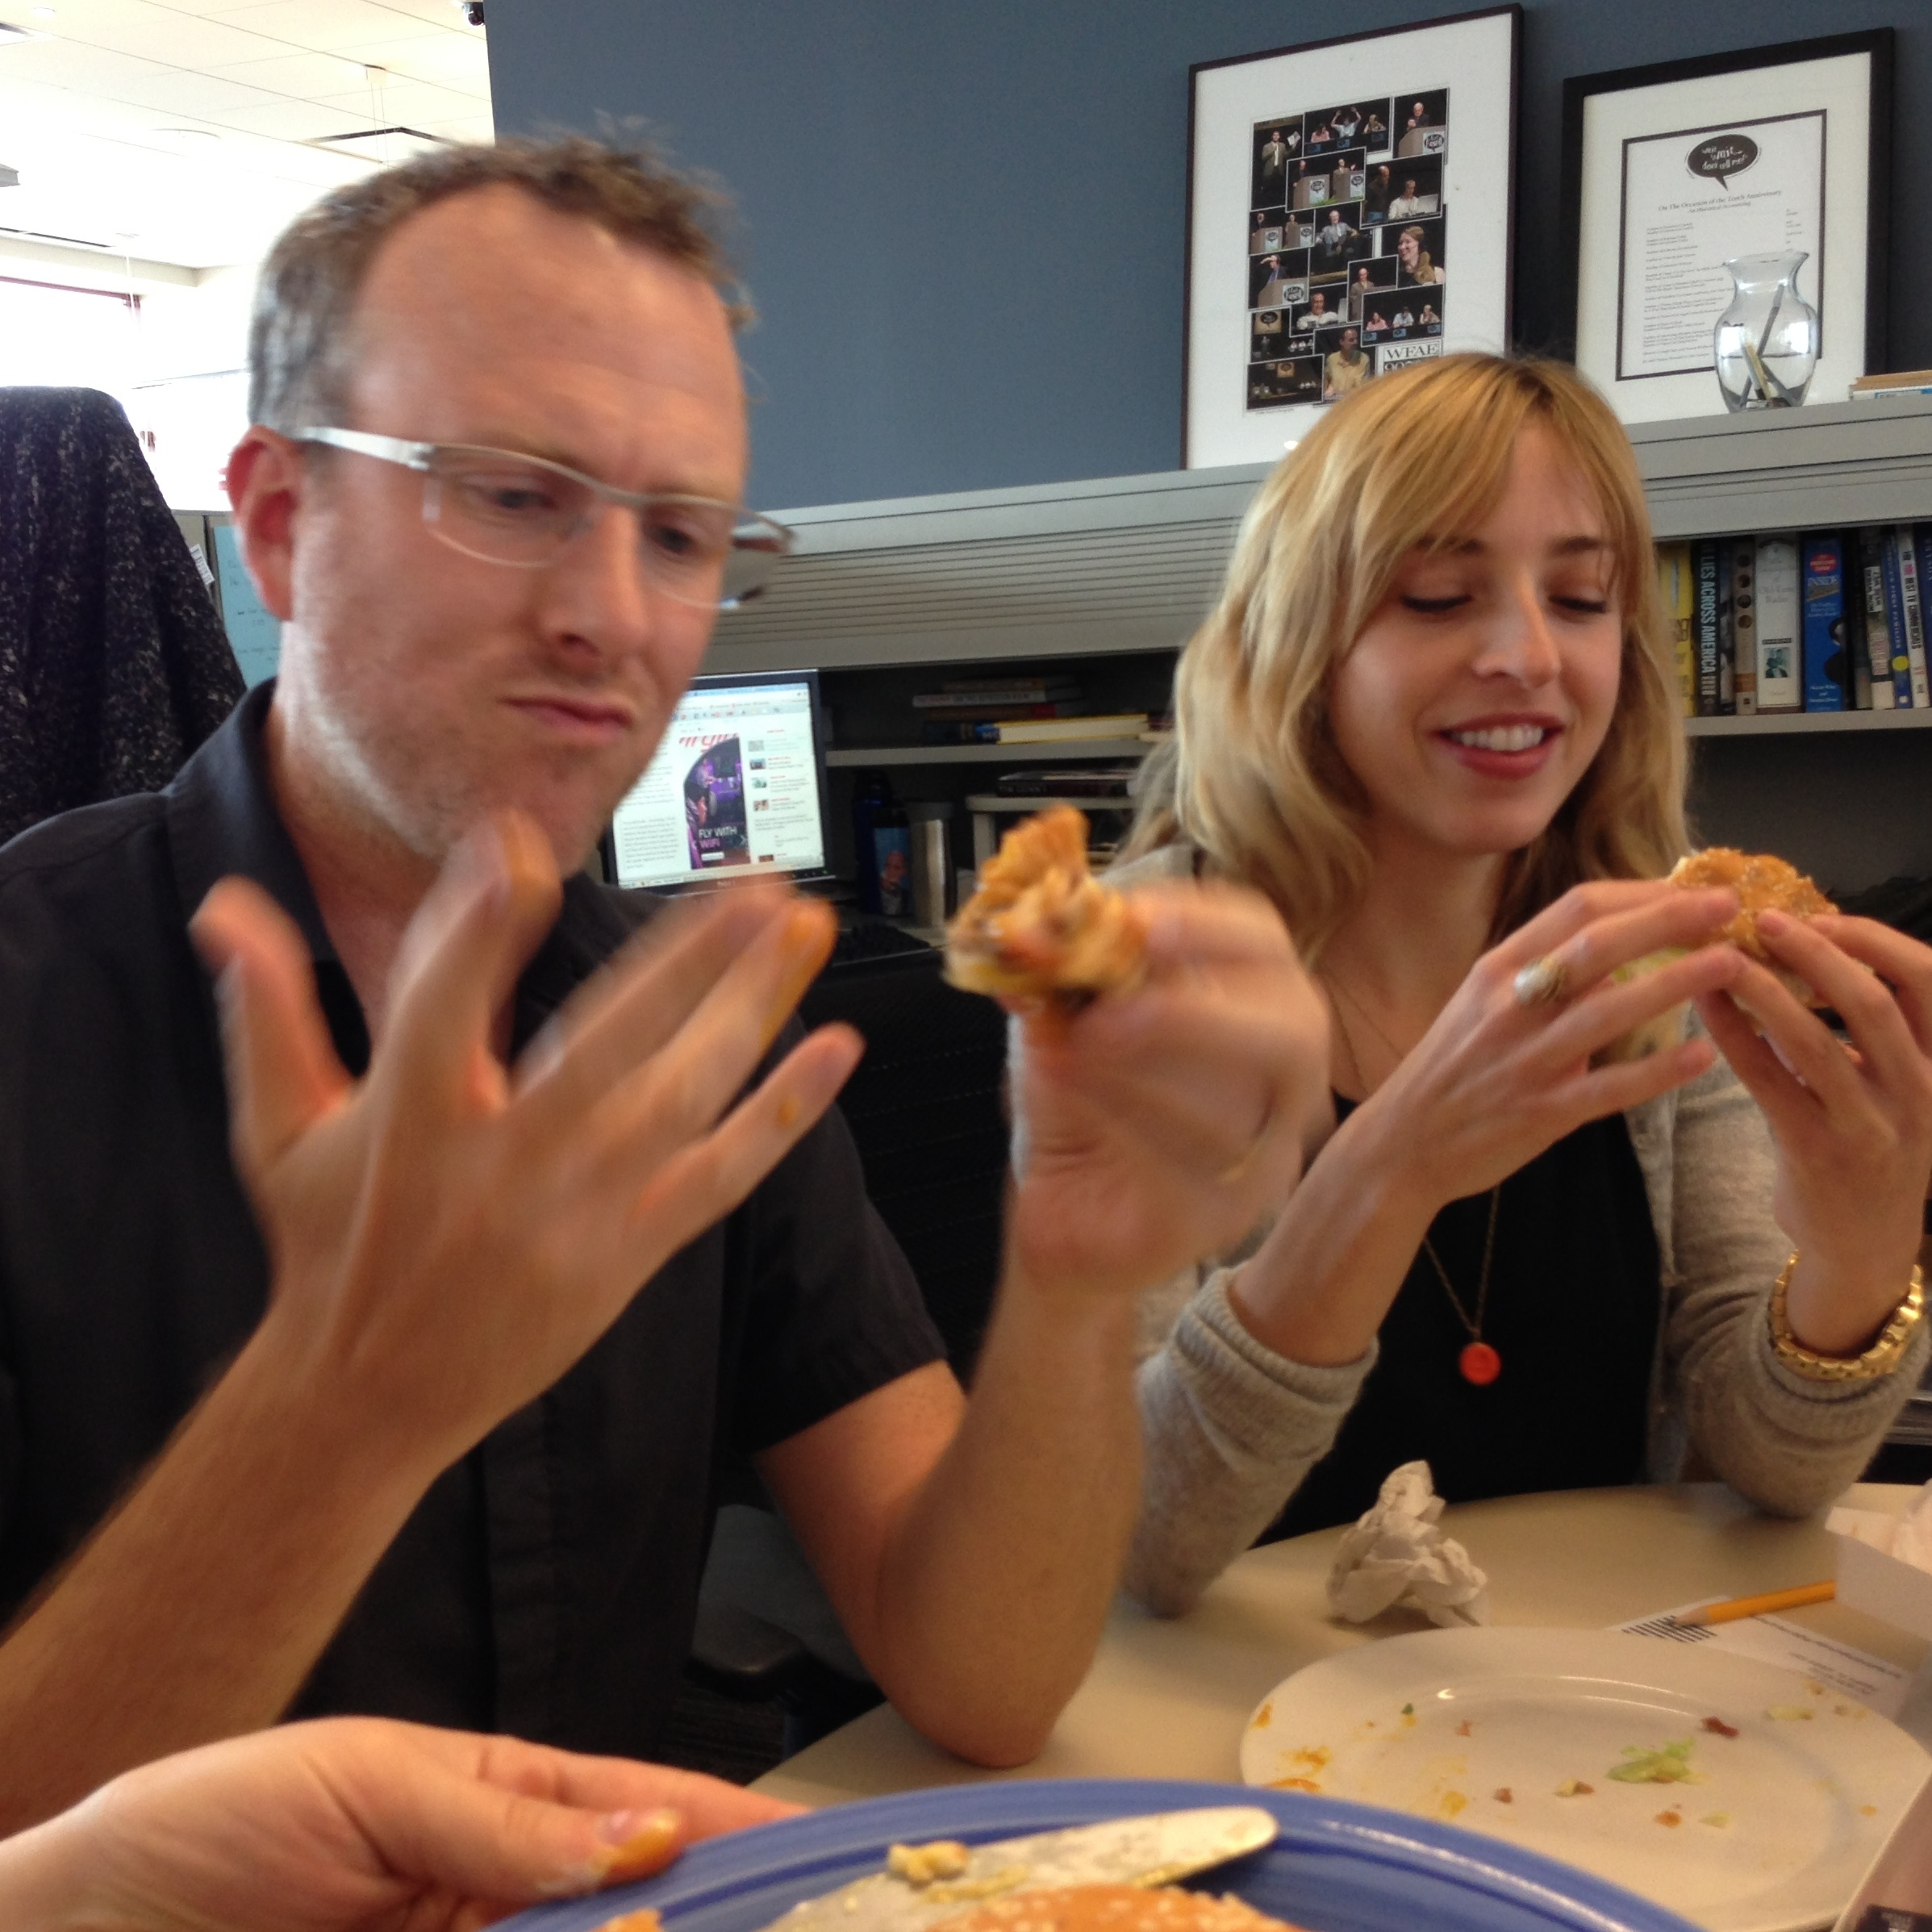 Mike and Eva contemplate their own anger towards sandwiches and each other.